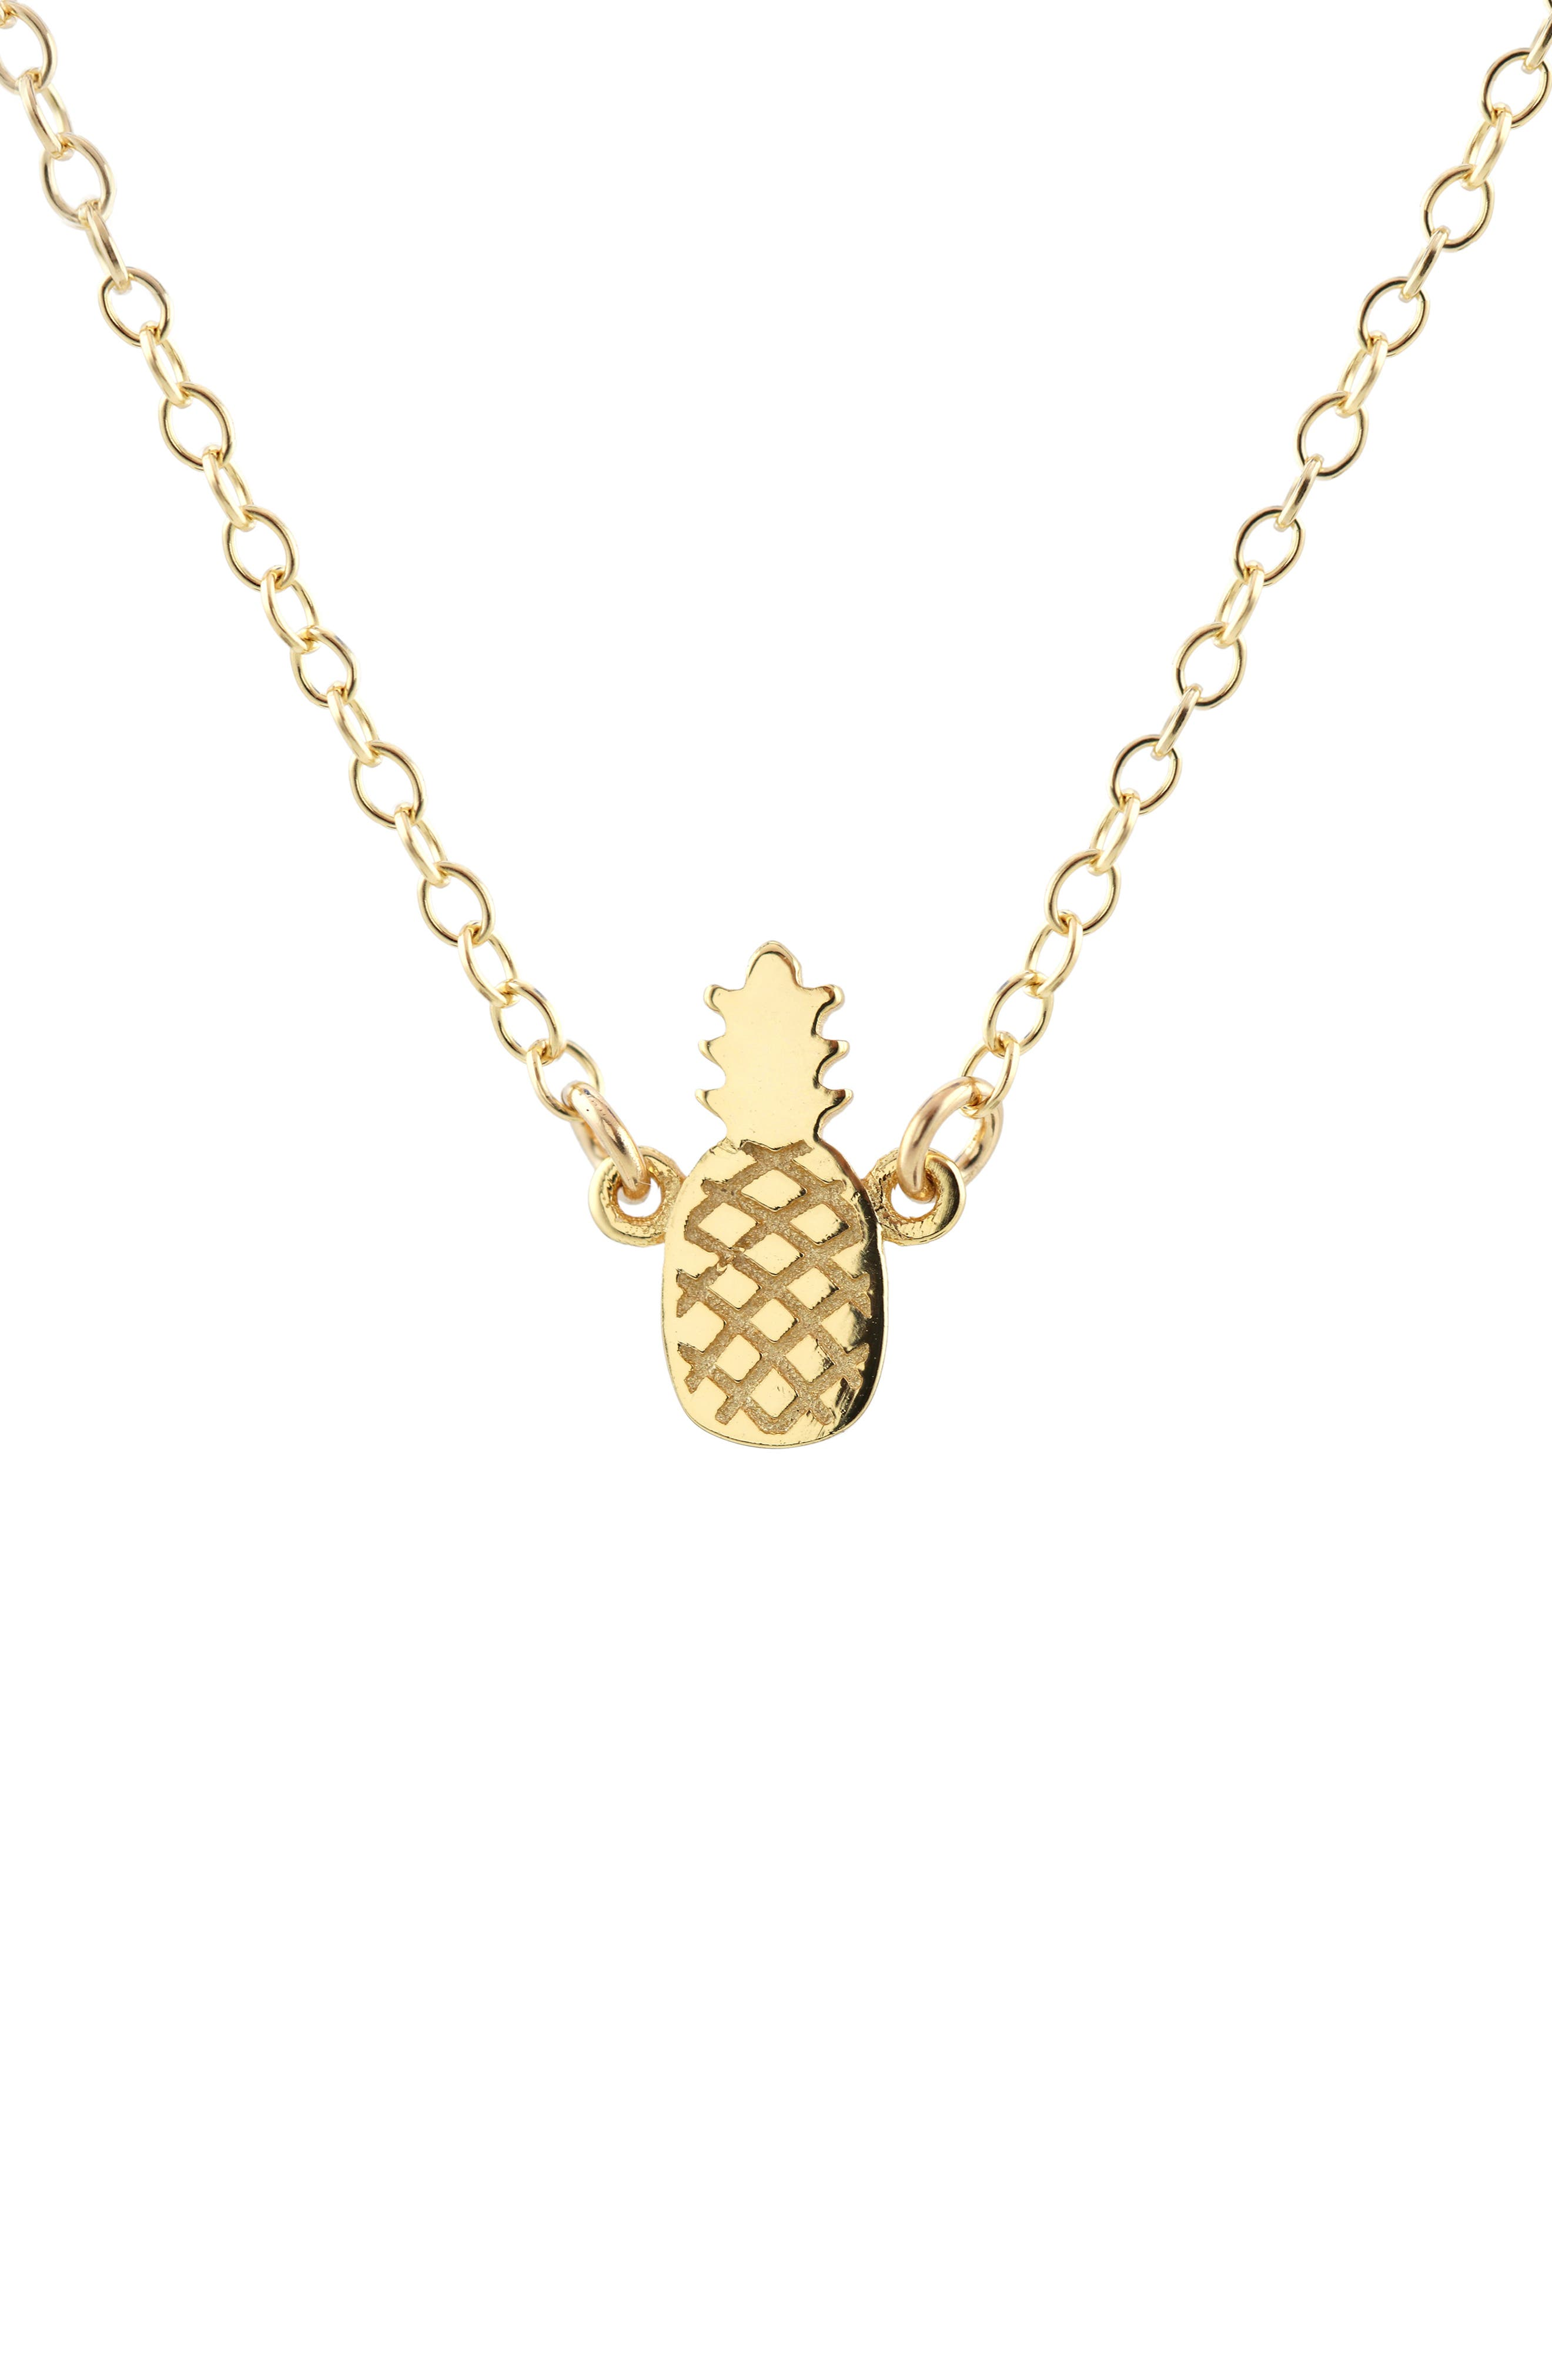 Pineapple Charm Necklace,                             Main thumbnail 1, color,                             Gold